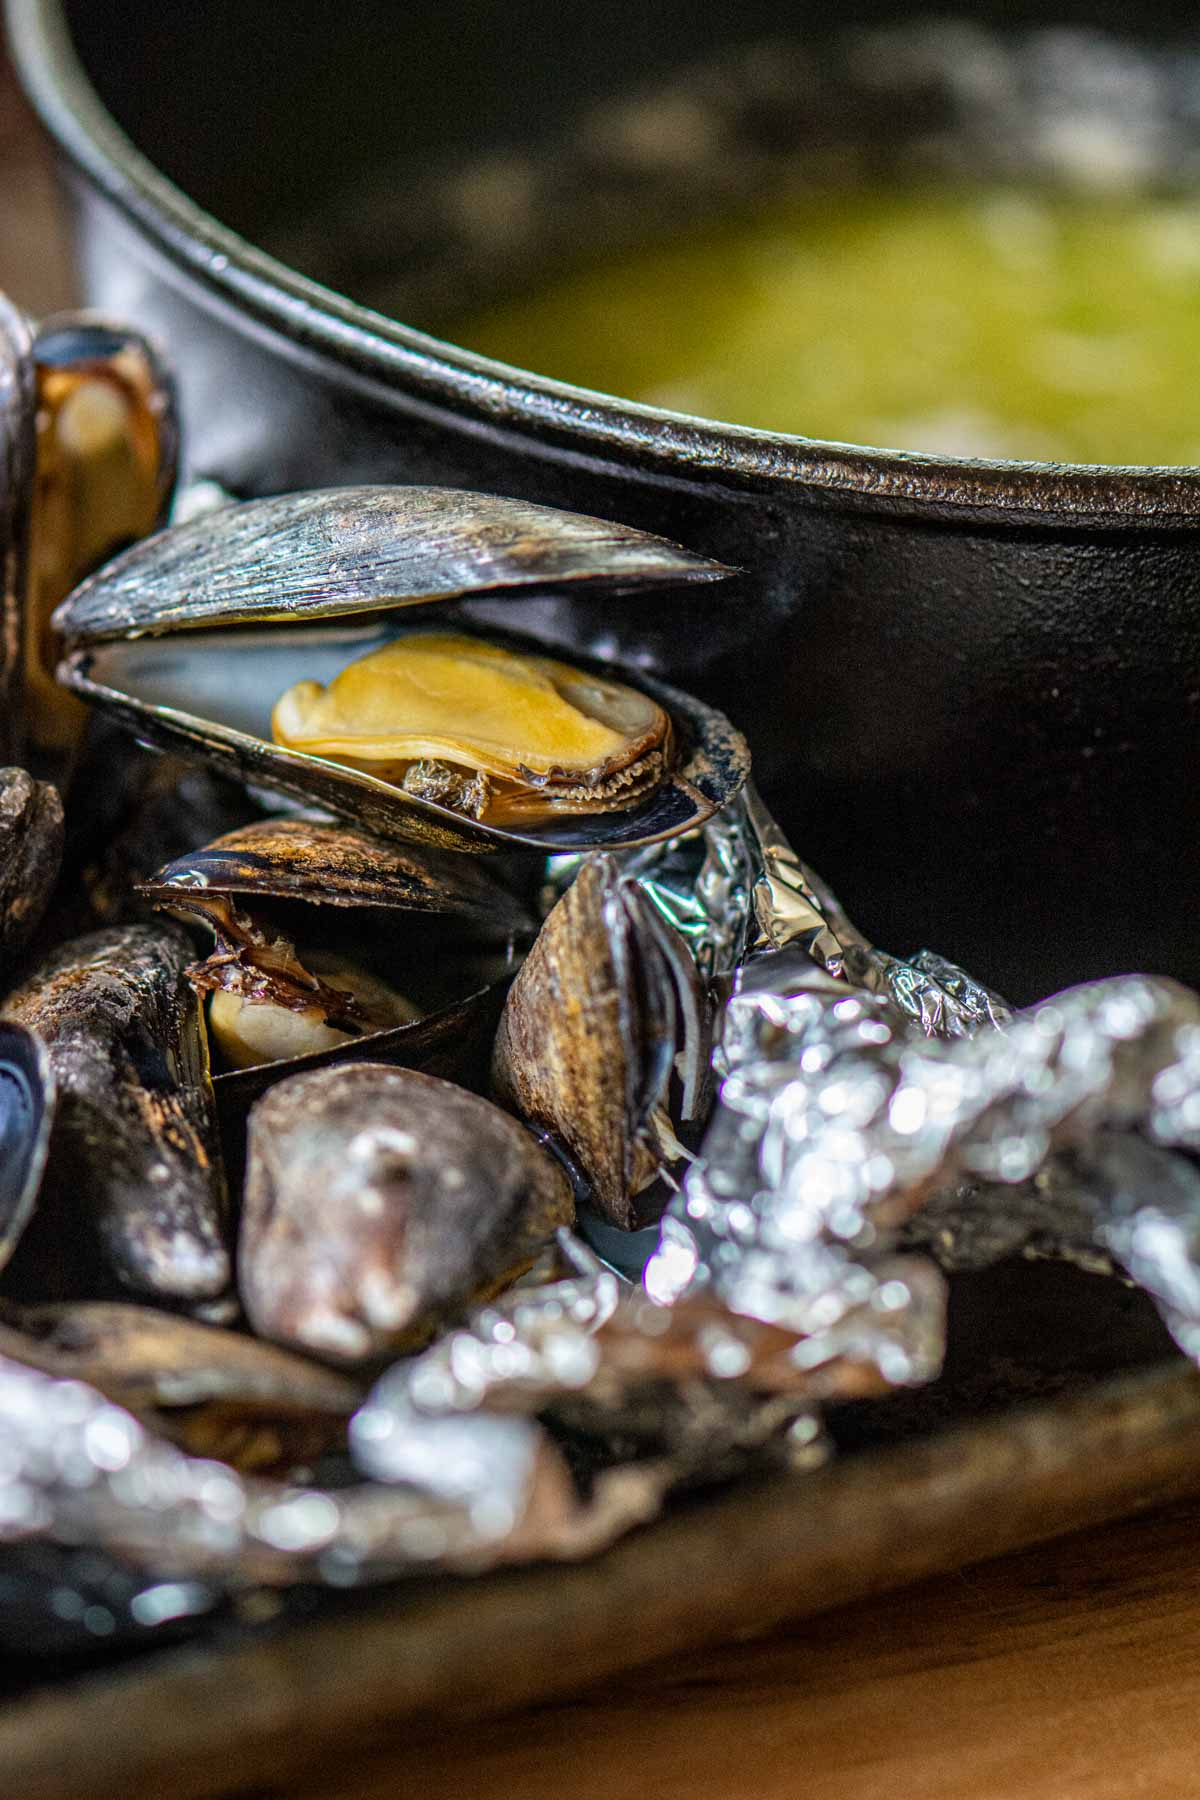 grilled mussels in a foil pack in front of melted butter.